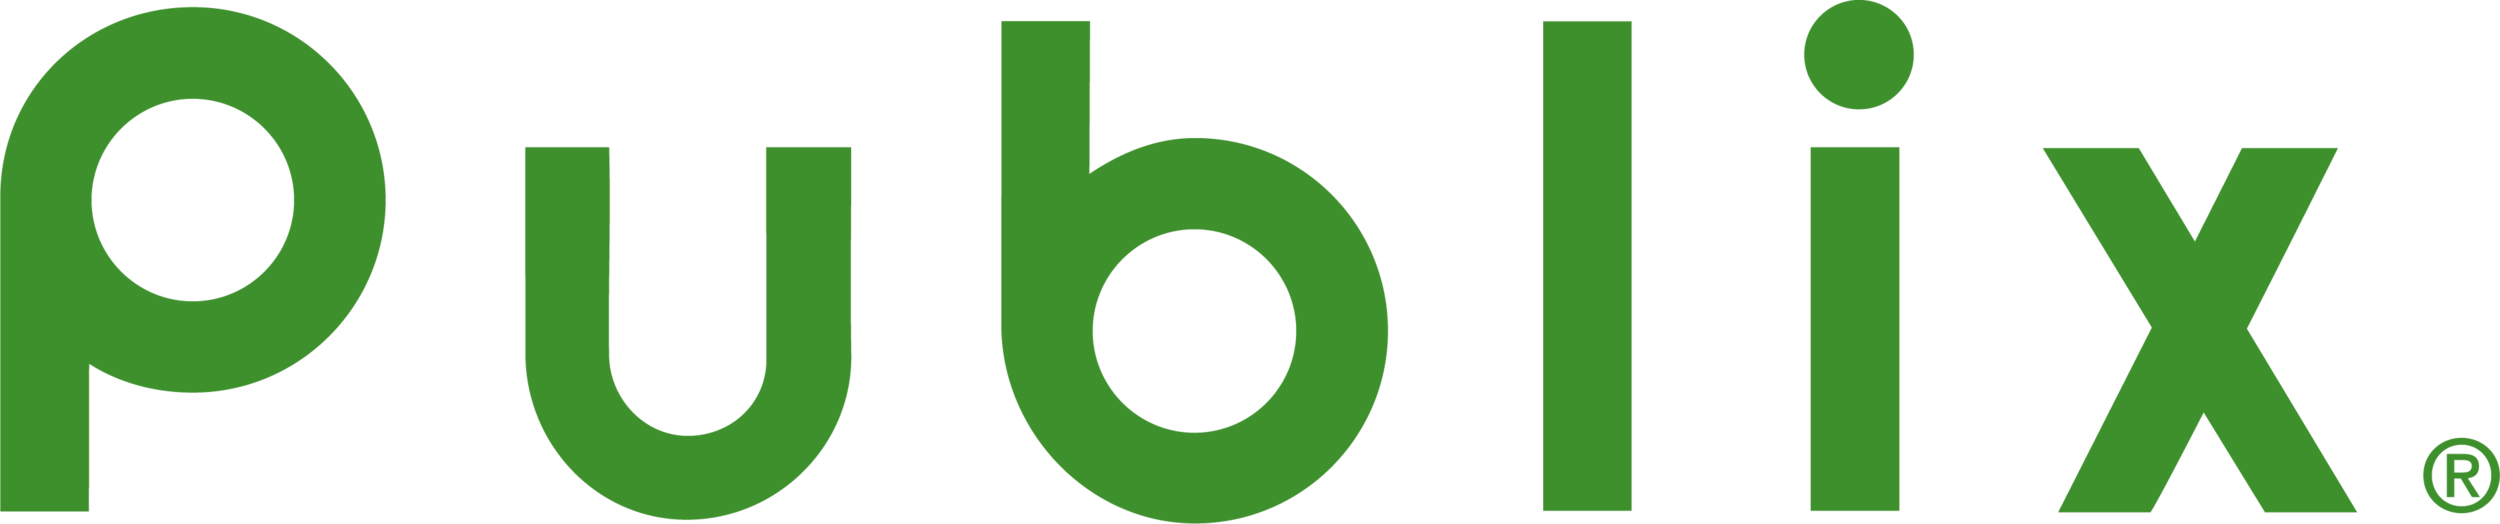 Presenting Wine Over Water Sponsor - Publix will be on the bridge offering complimentary charcuterie that will pair perfectly with our wines!